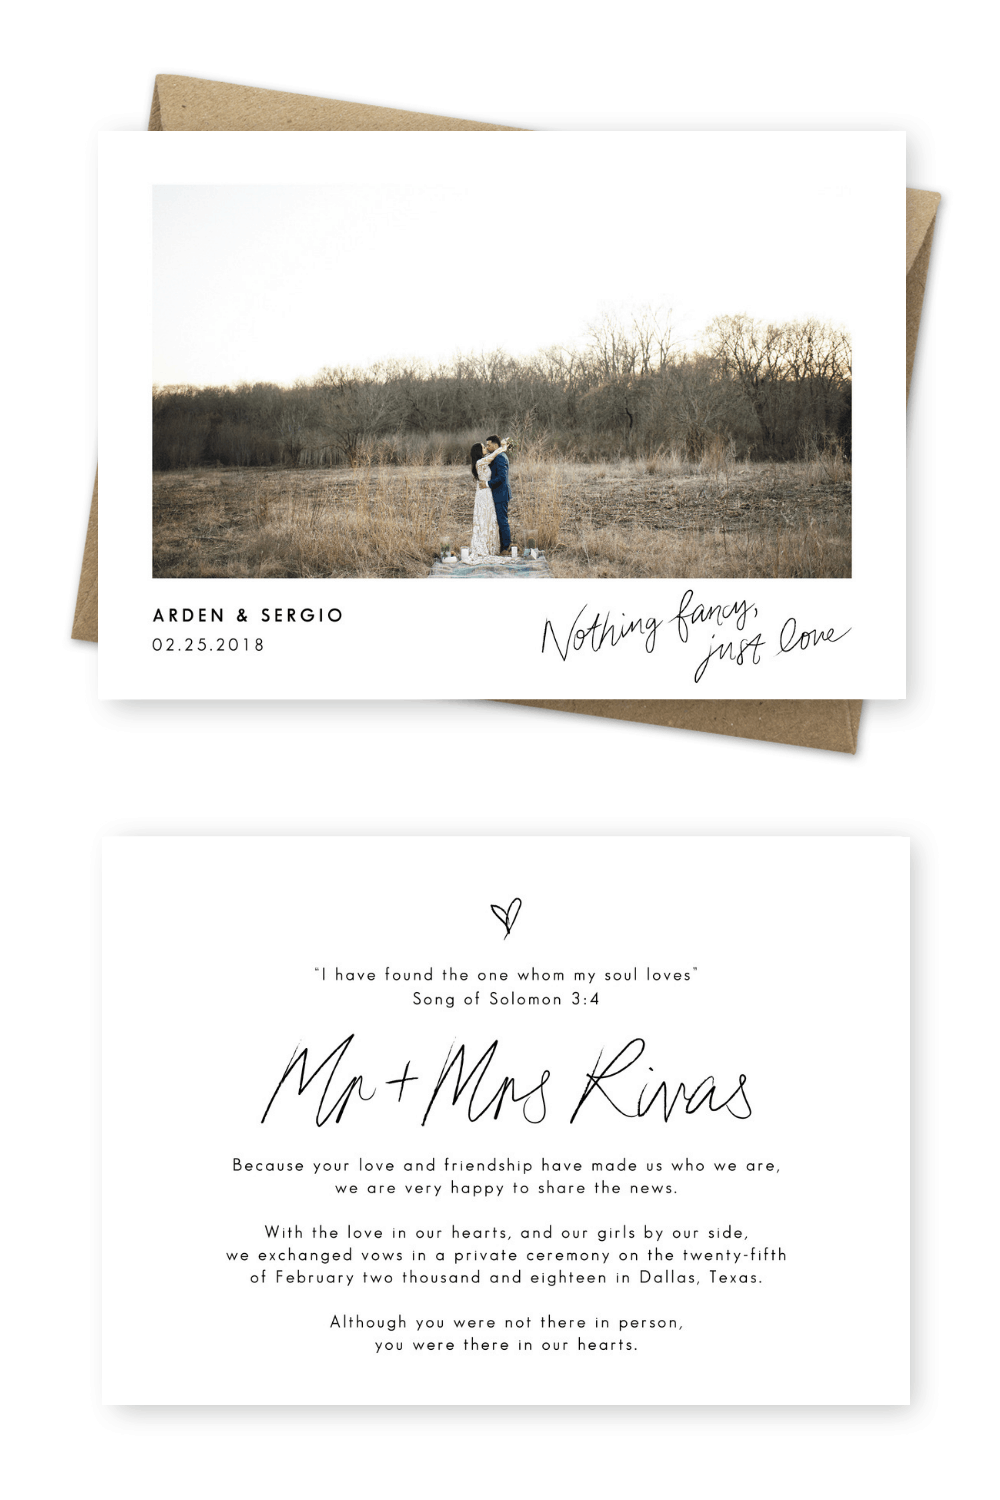 Elopement Announcement Cards and Wedding Invitation Ideas We Eloped Nothing Fancy Just Love